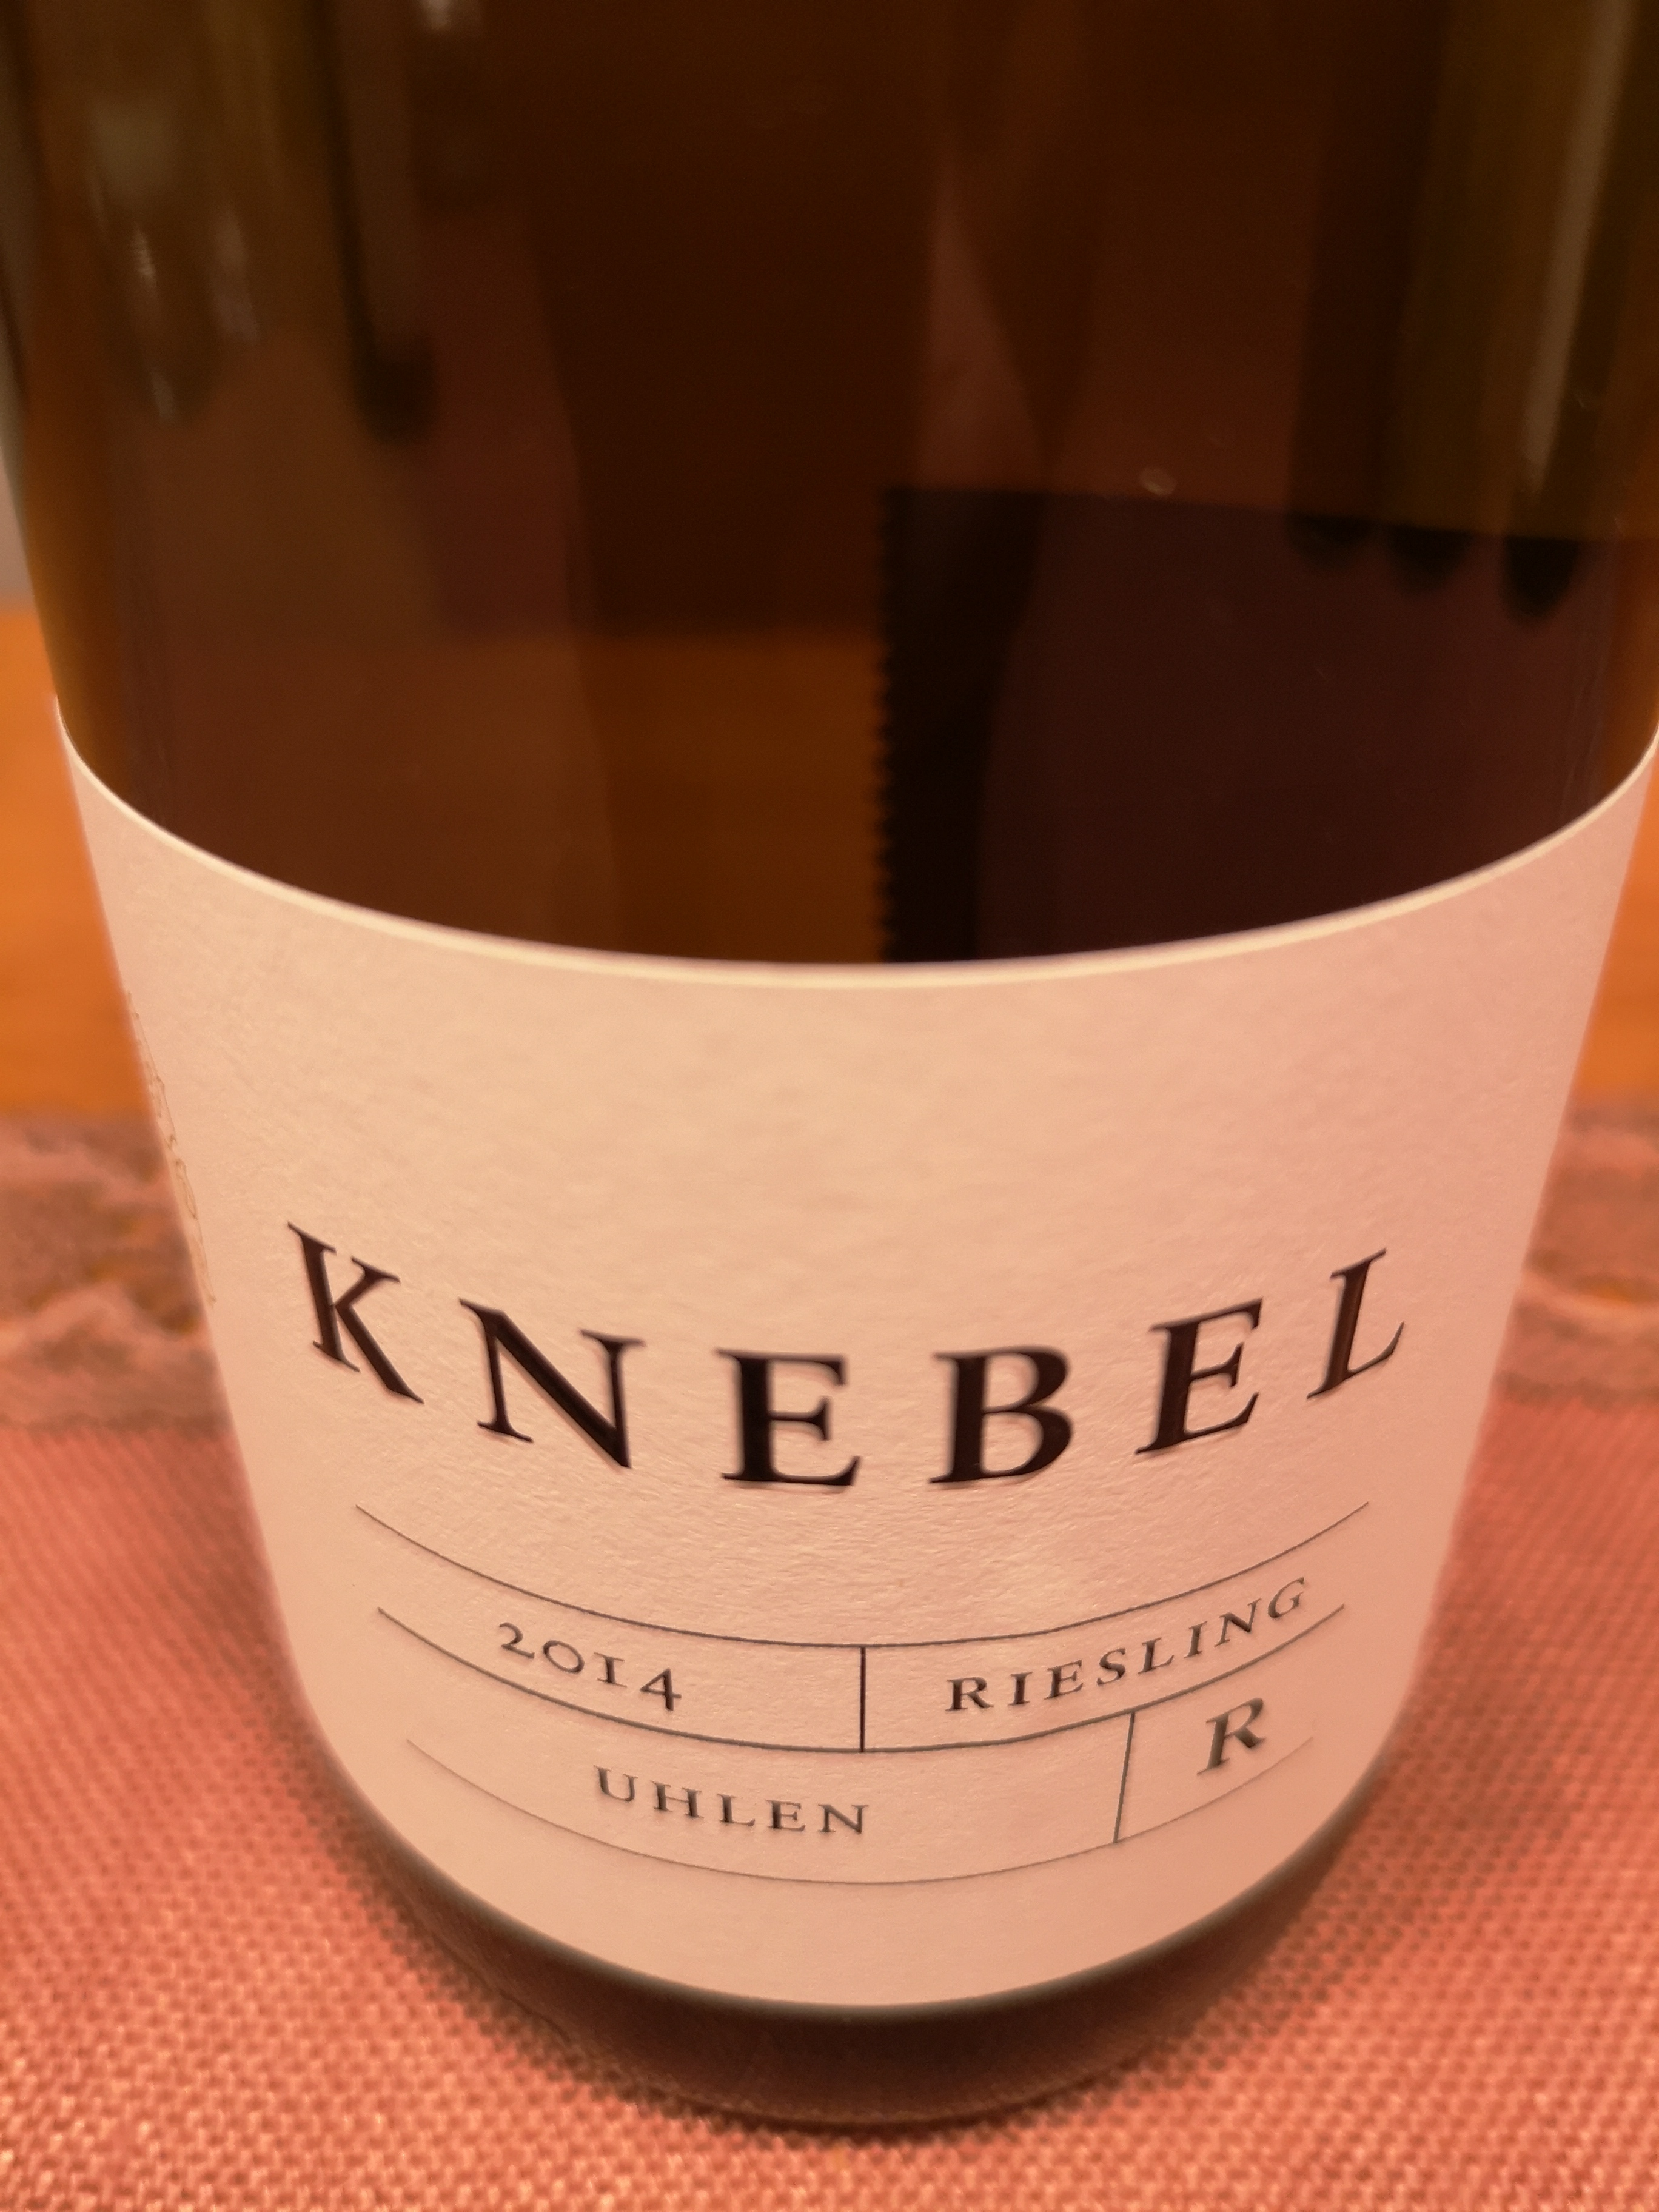 2014 Riesling Uhlen Rothlay | Knebel